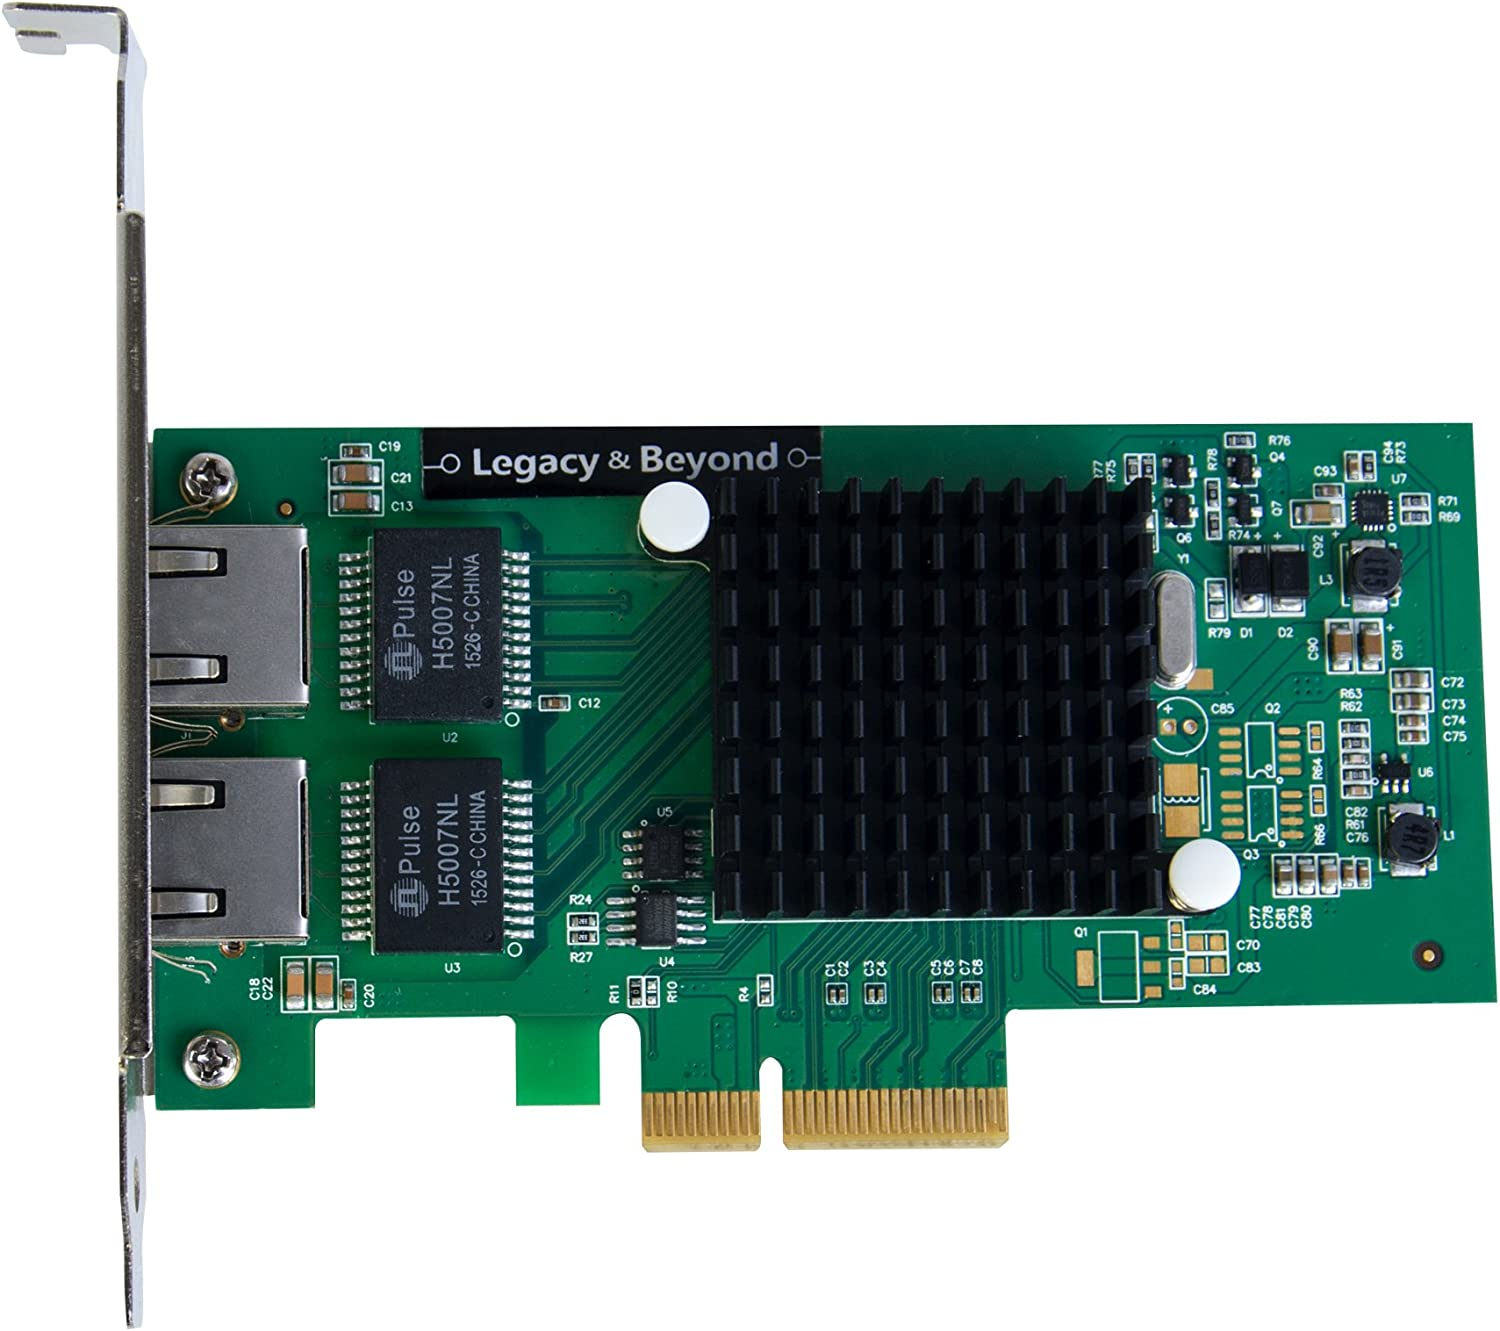 SIIG Dual-Port Gigabit Ethernet PCIe 4-Lane Card I350-T2 Network Adapter PCI Express x4 Low Profile Ethernet Green LB-GE0014-S1